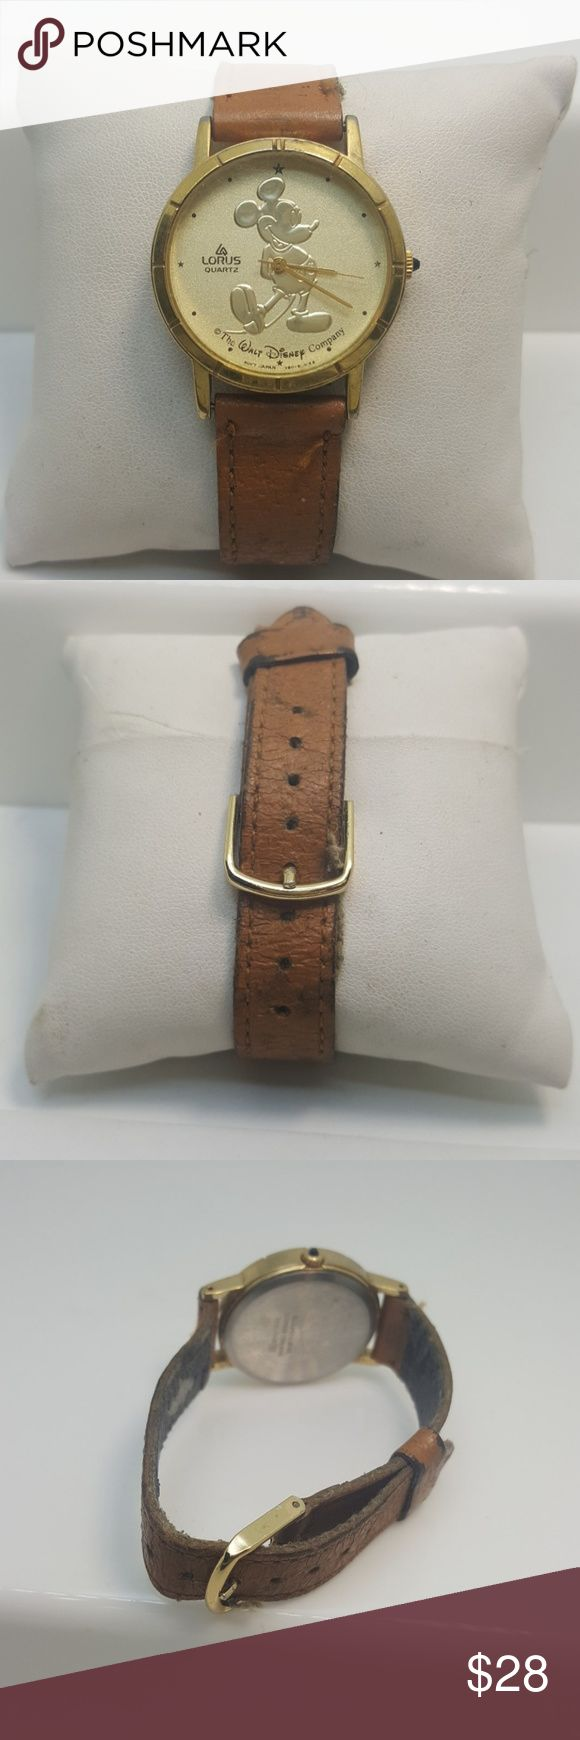 Vintage mickey mouse watch Vintage mickey mouse watch working needs a new leather band Accessories Watches